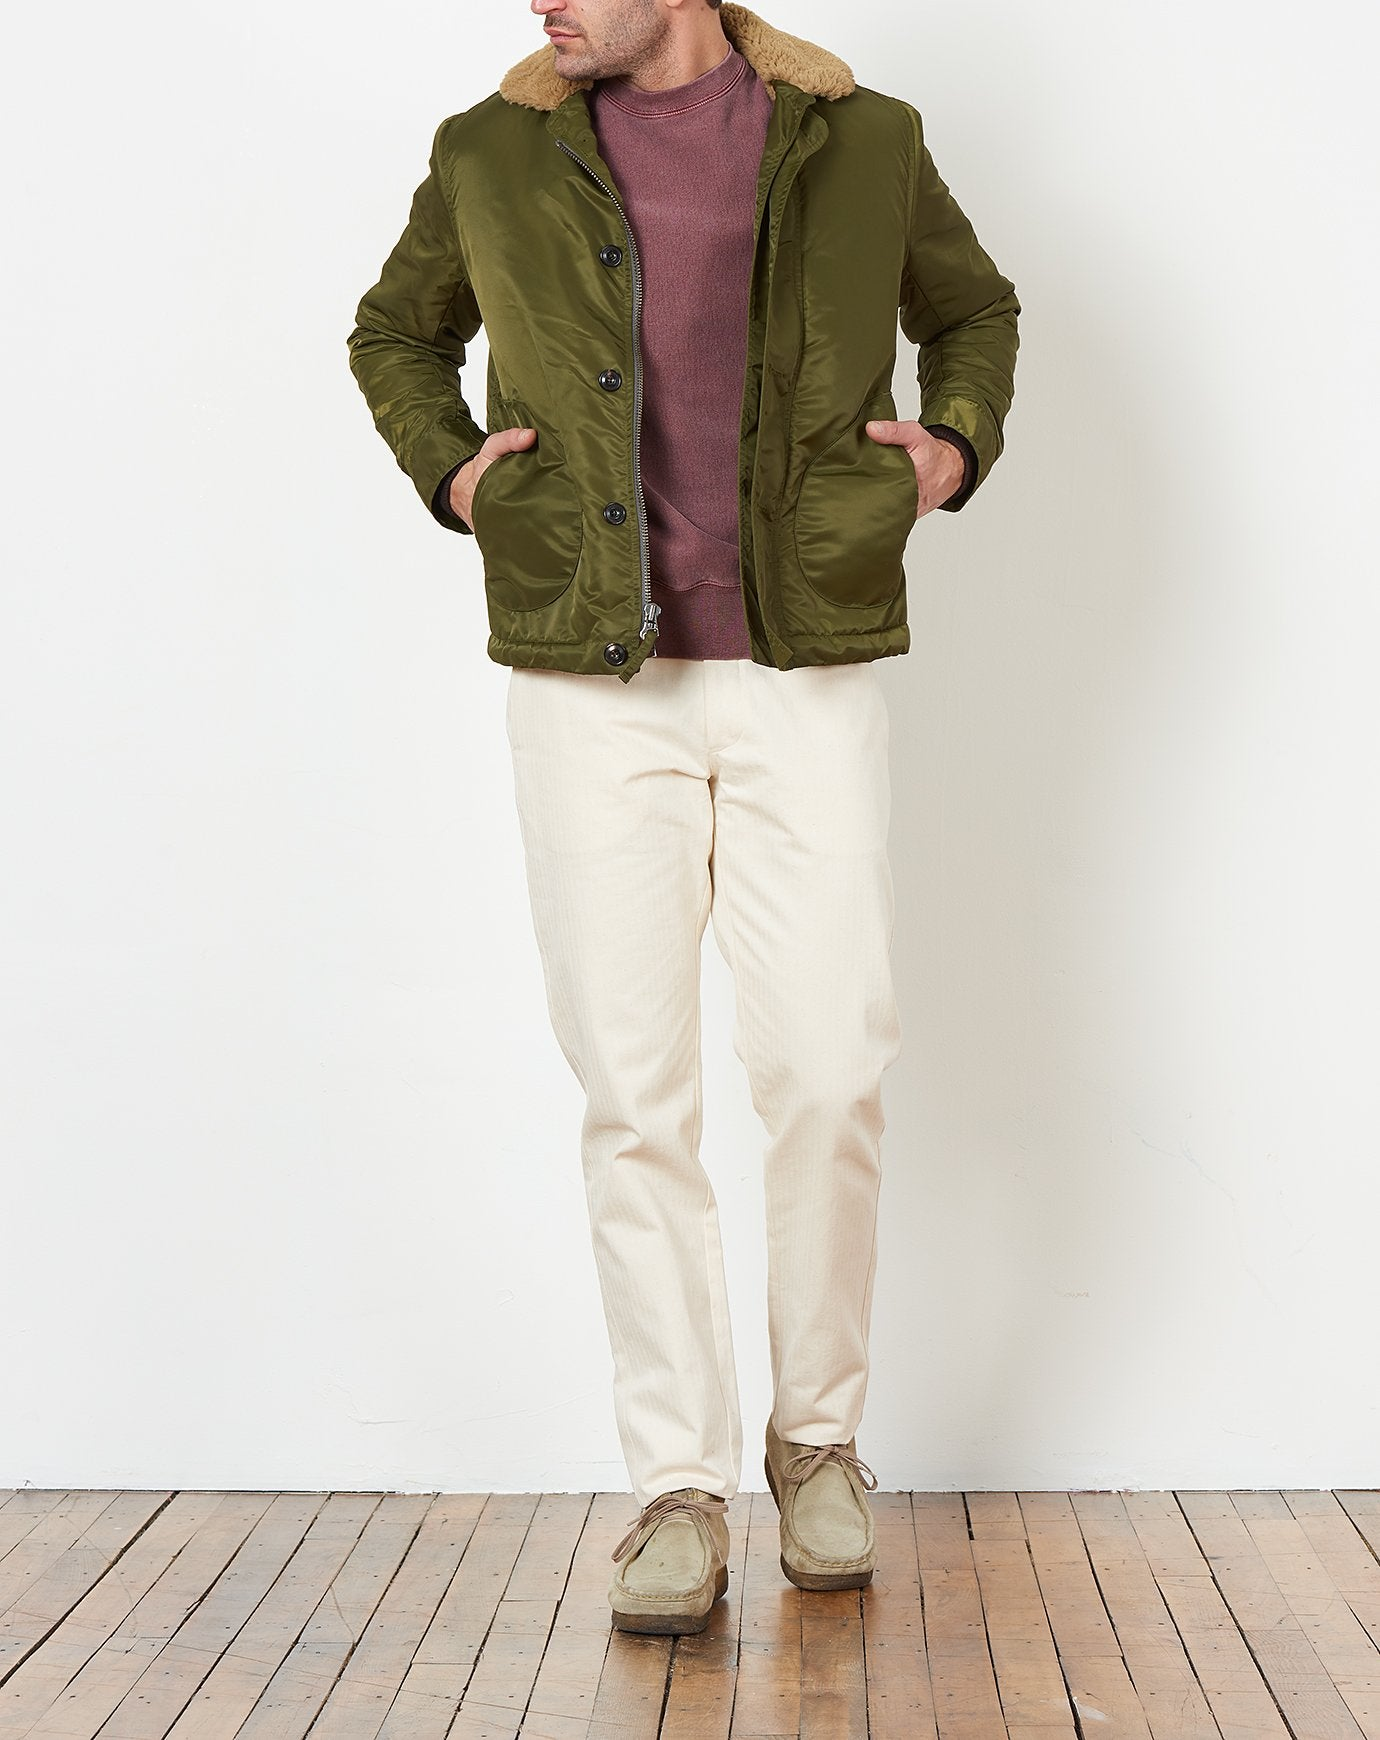 Shearling Deck Jacket in Olive